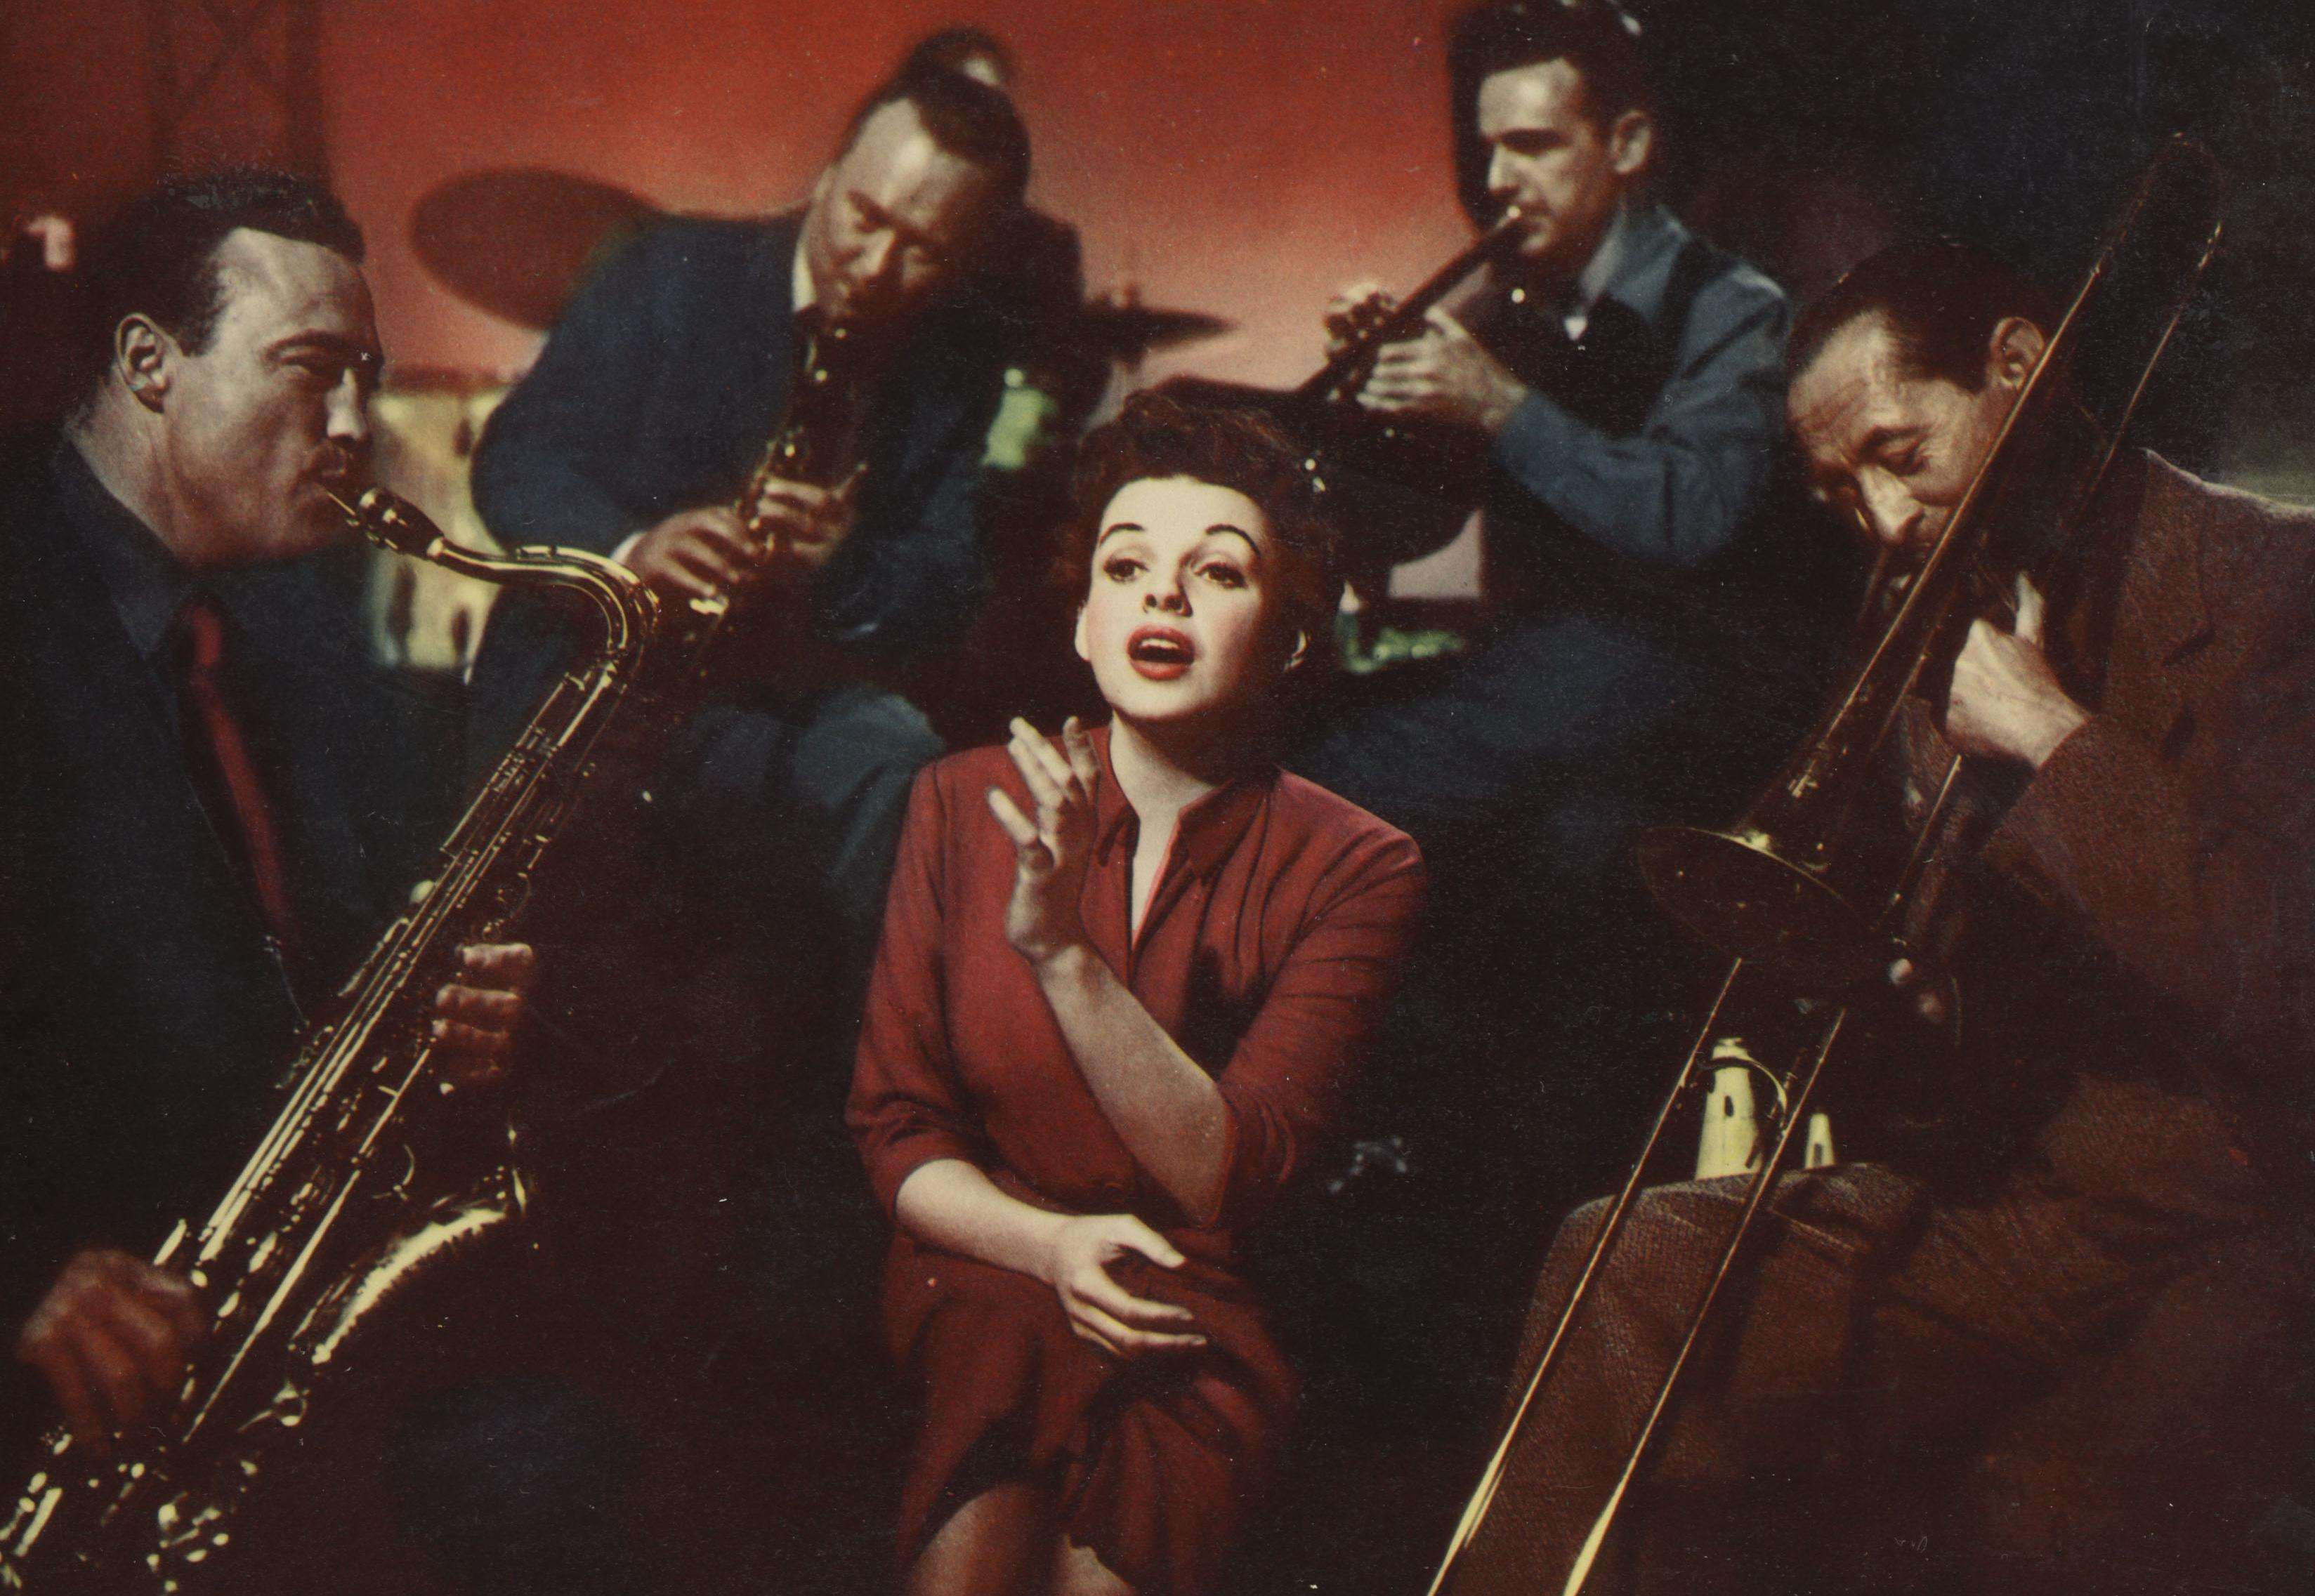 Streaming: where to find Judy Garland films online